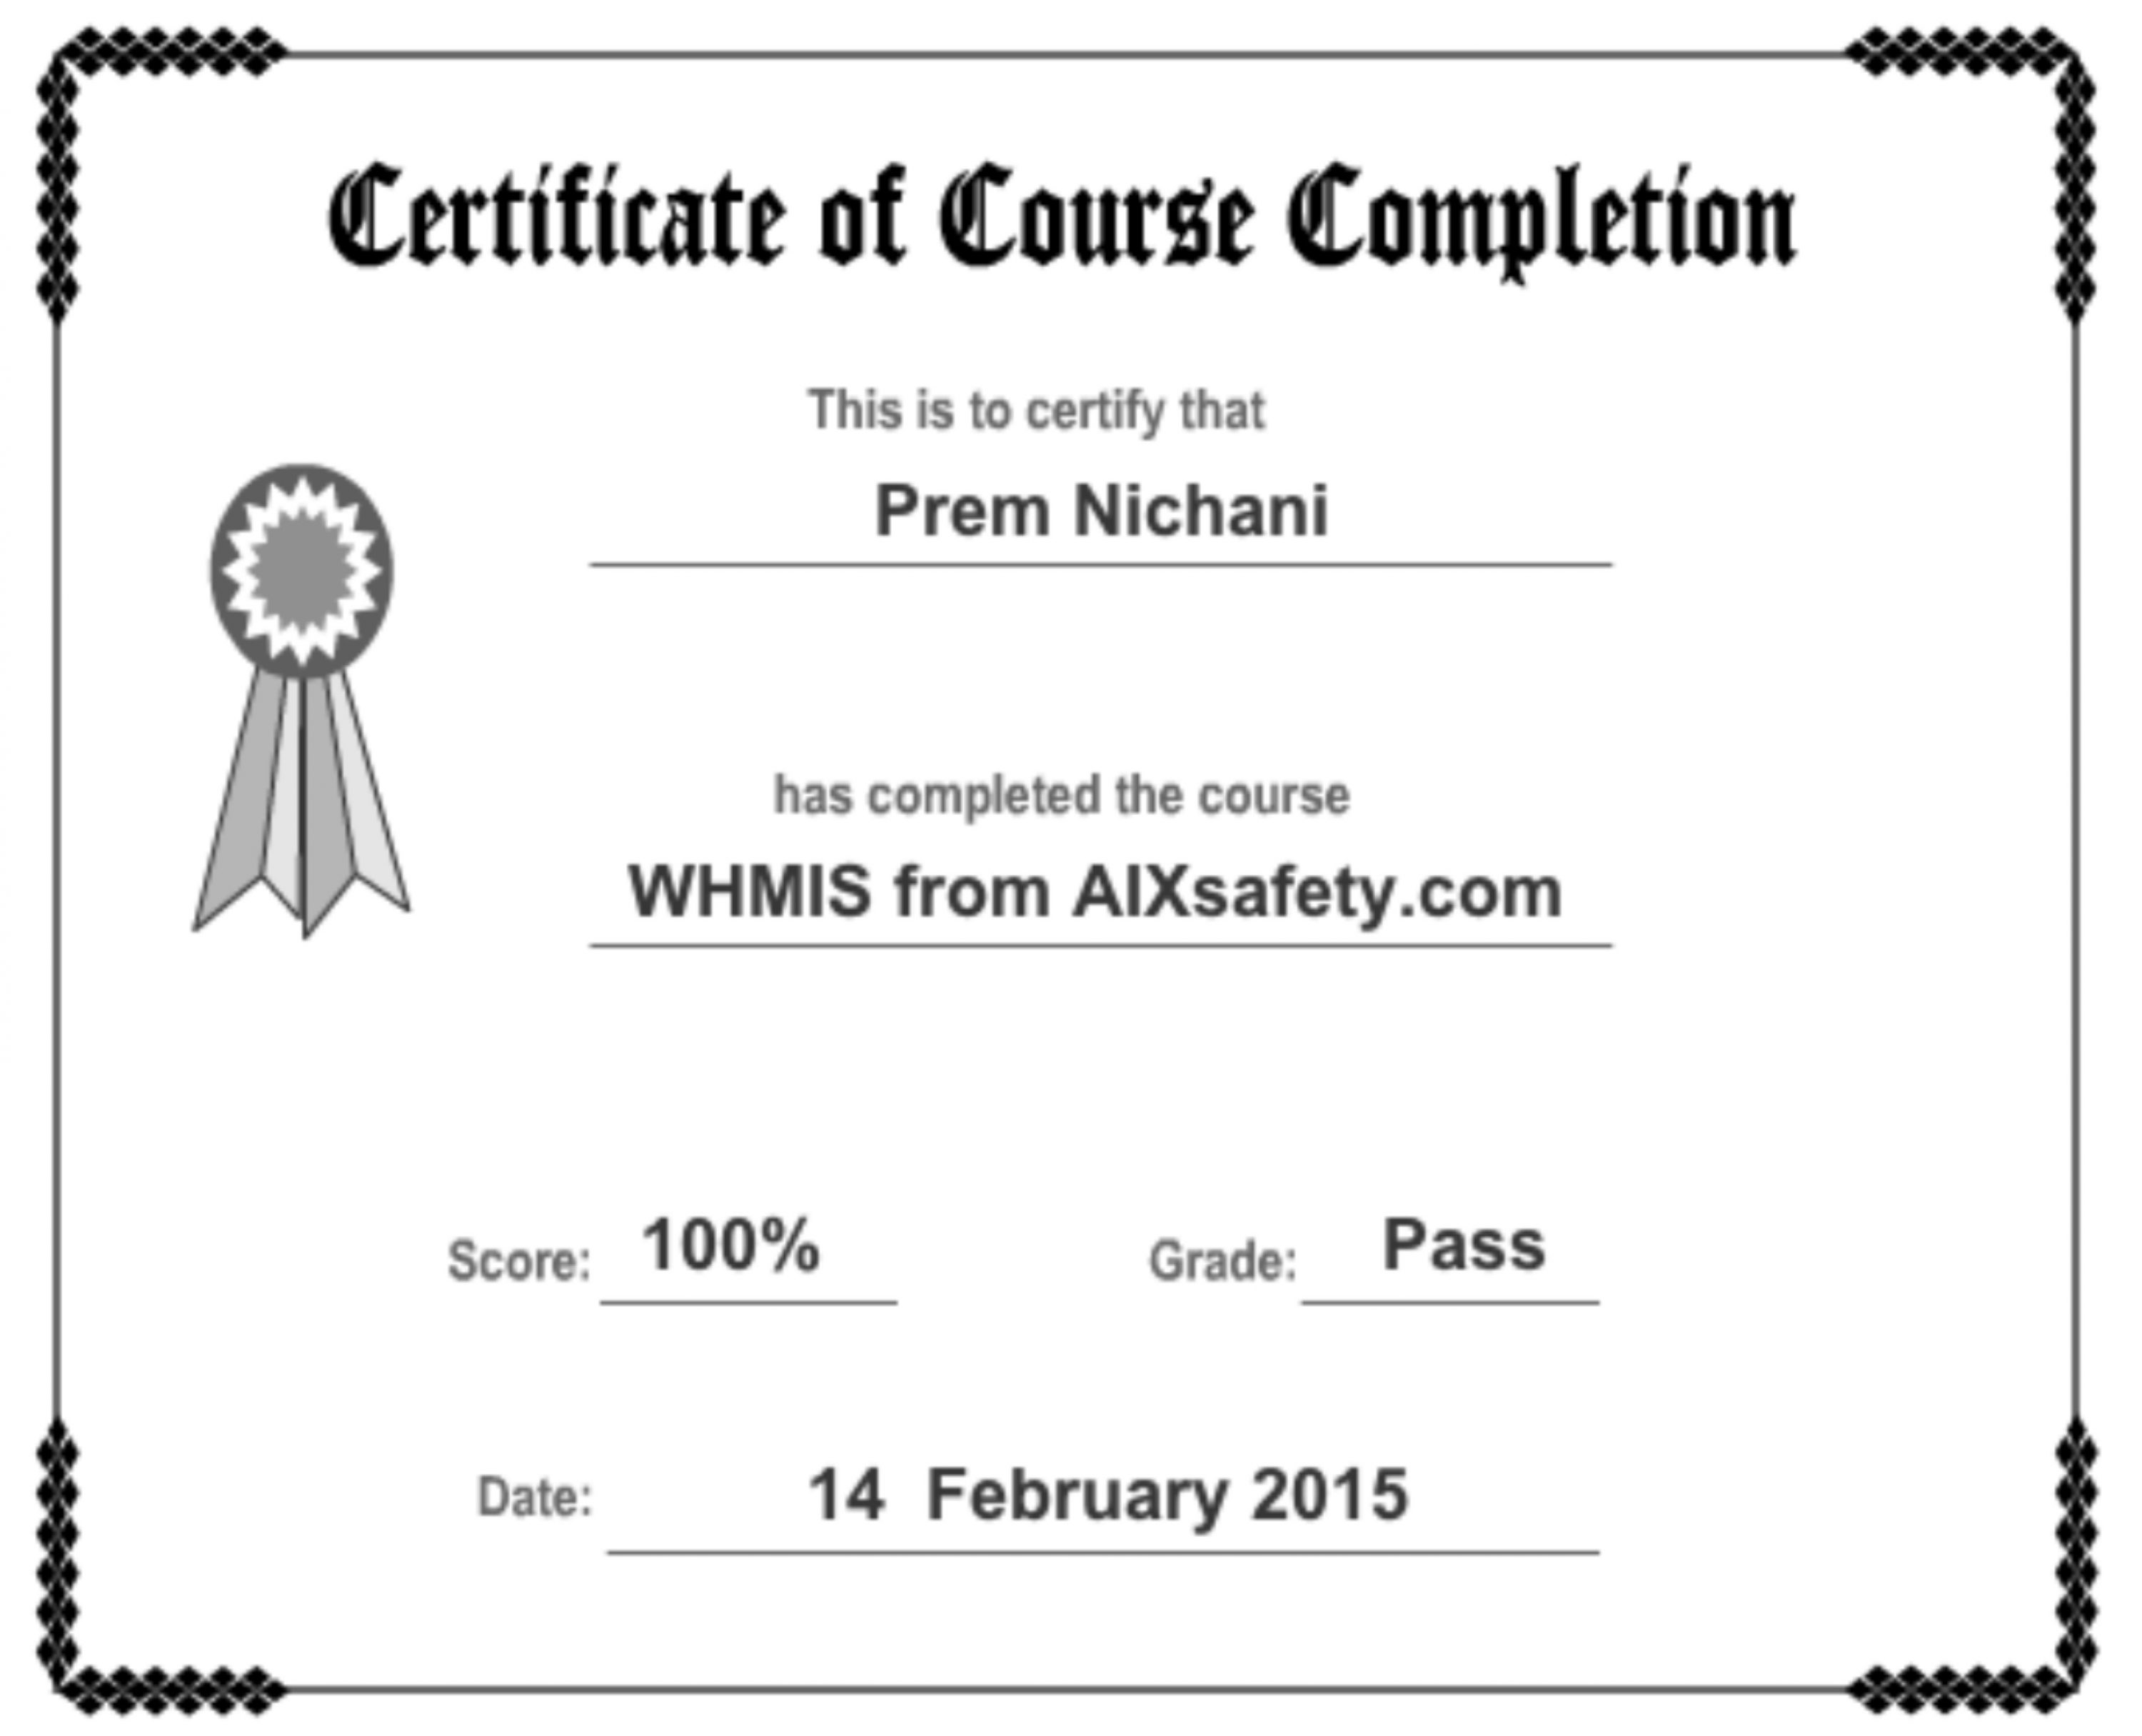 Whmis certificate template choice image templates example free whmis certificate template images templates example free download fine whmis certificate template images resume ideas namanasa buycottarizona